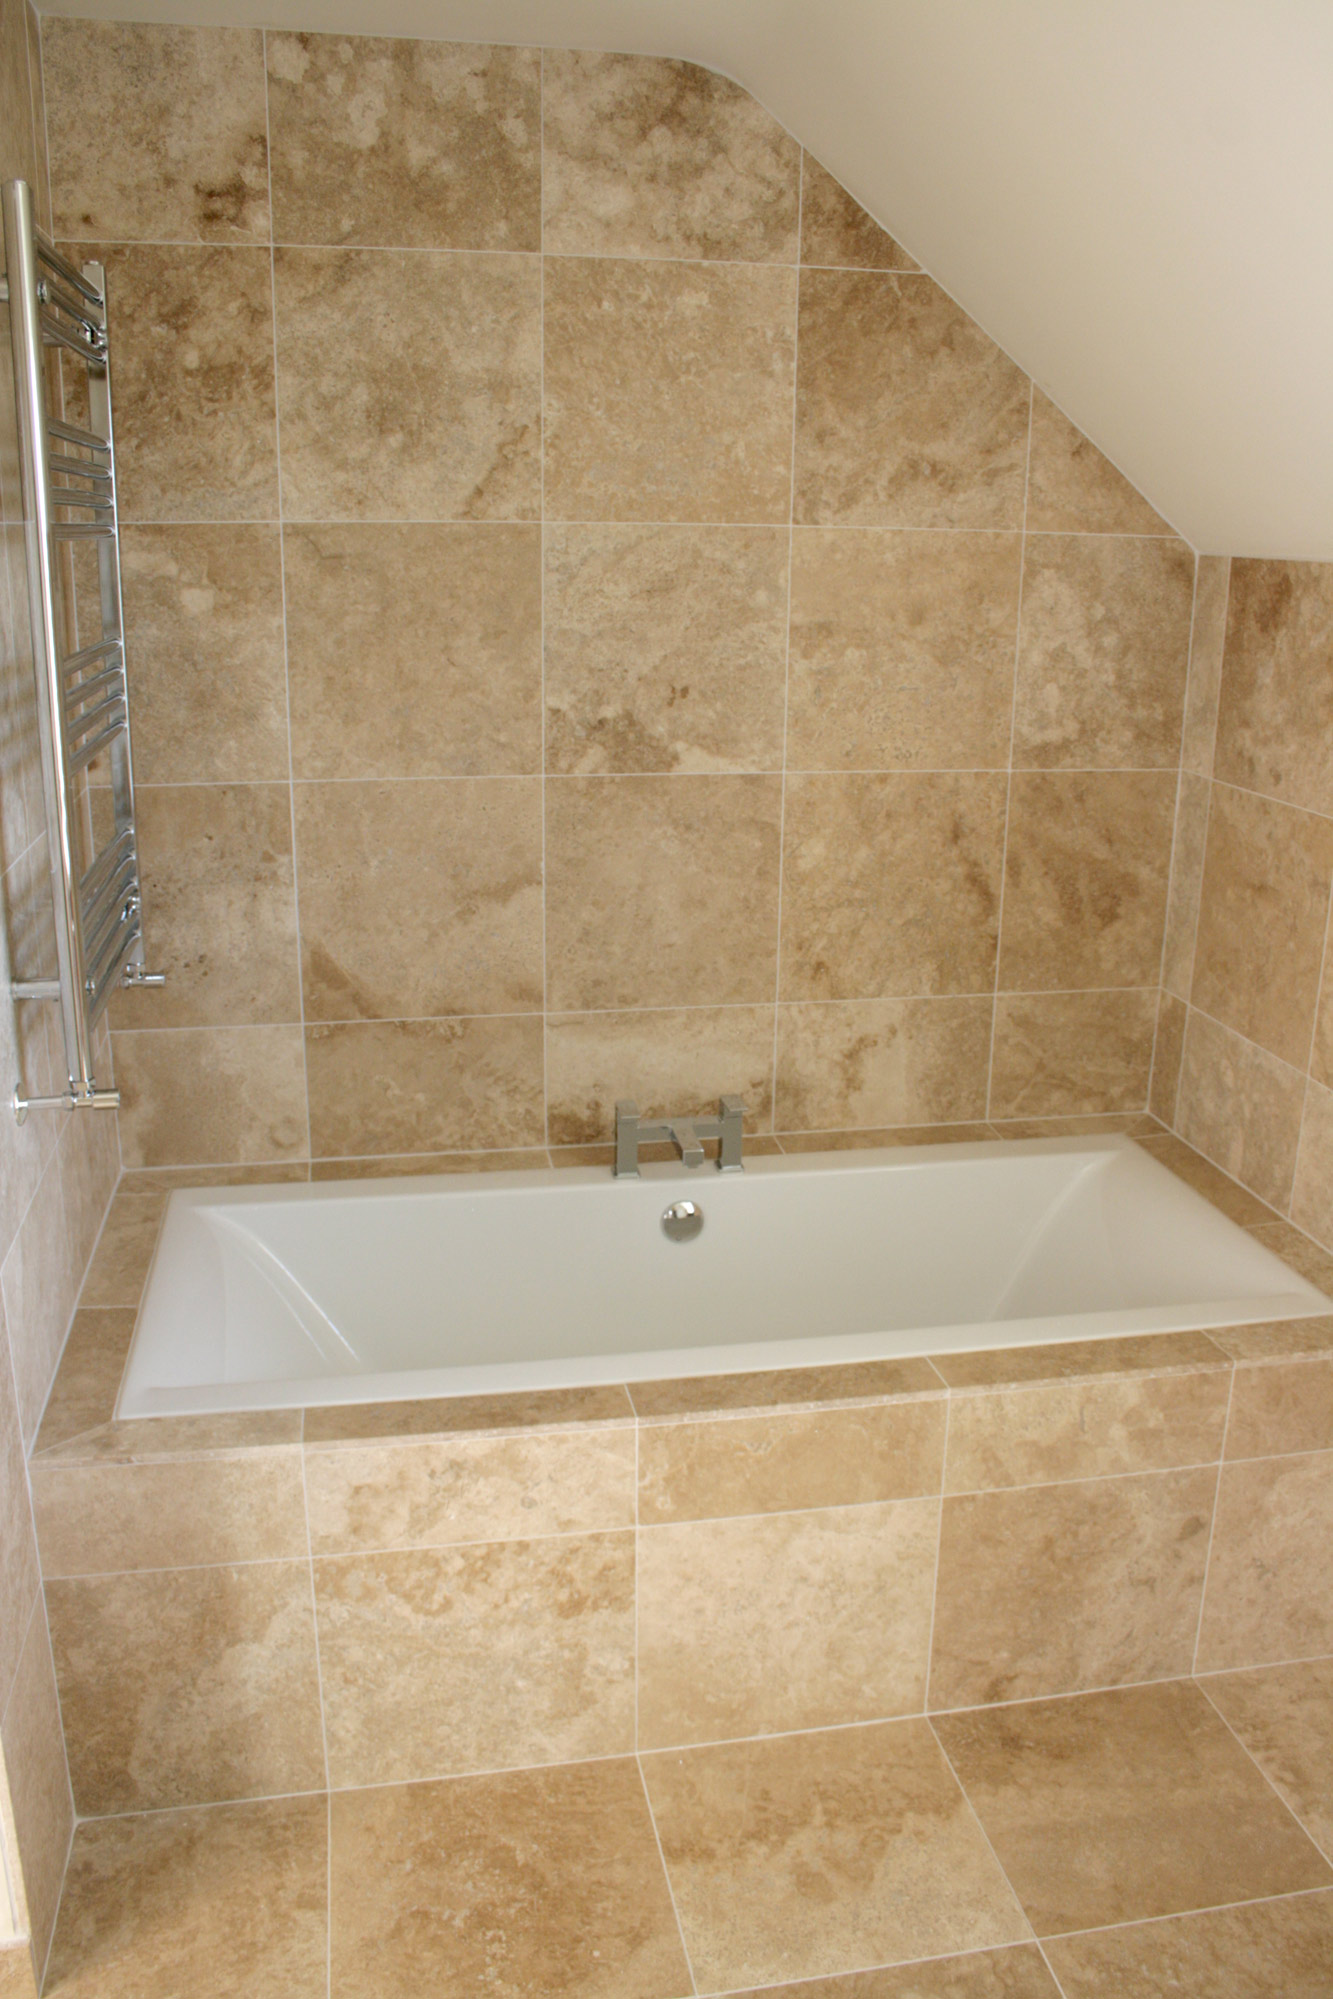 21 Pictures And Ideas Of Travertine Tile Designs For